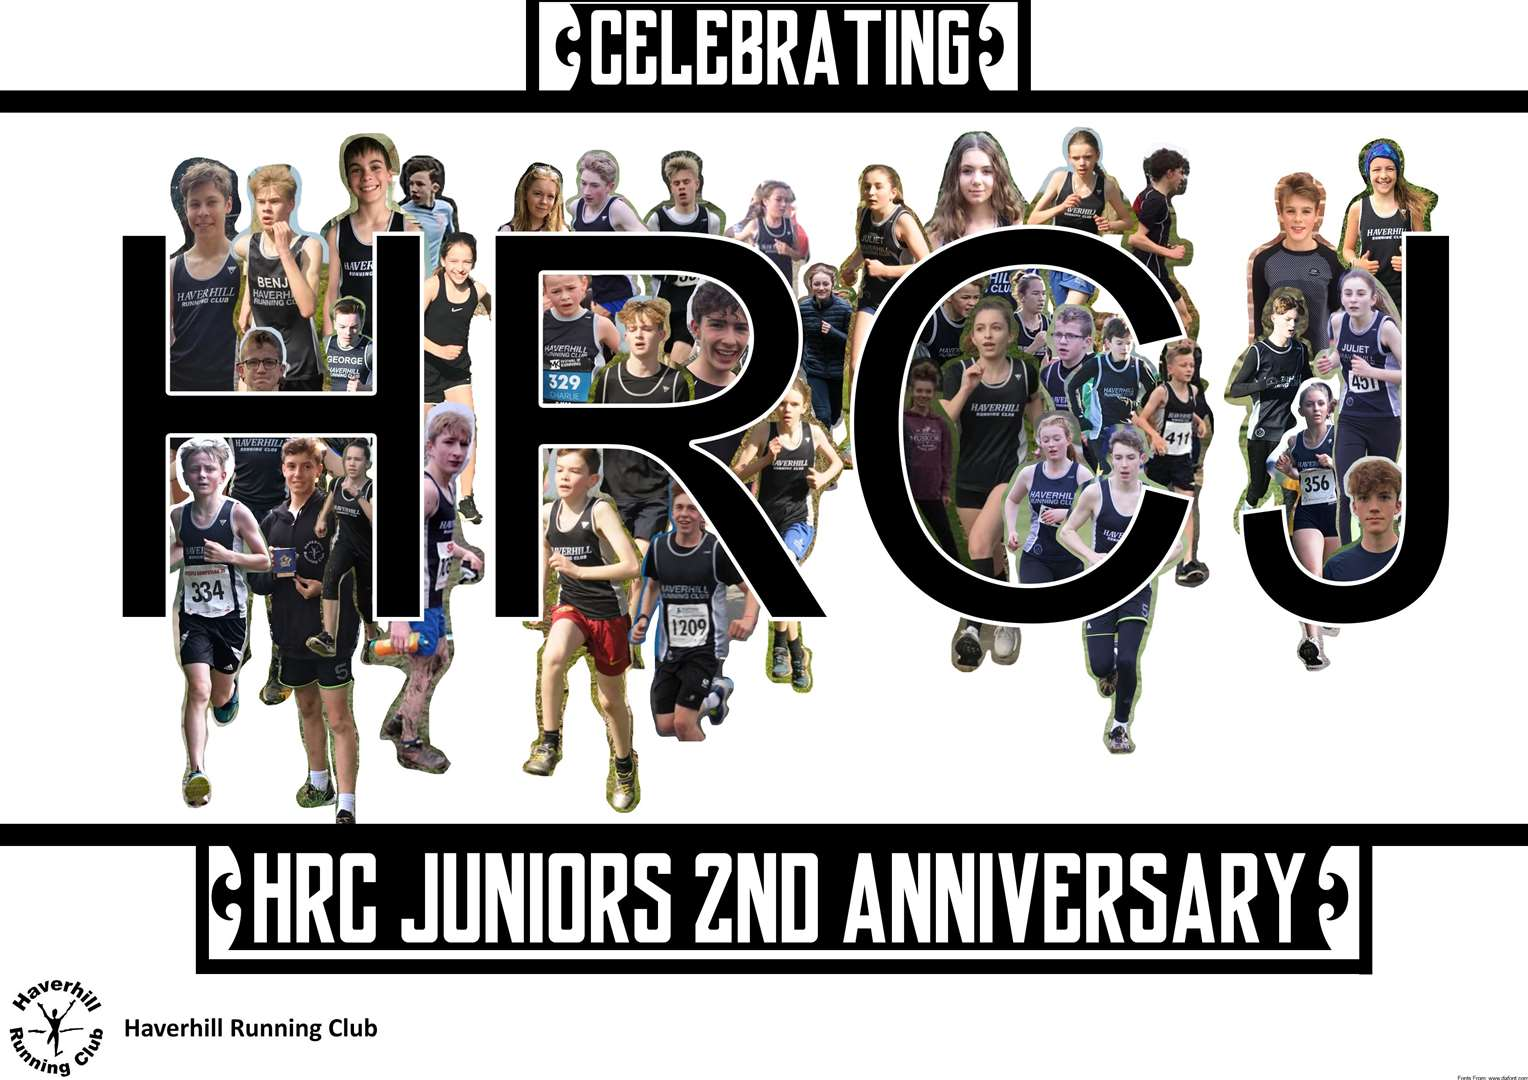 ~Haverhill Running Club's Junior section have celebrated their 2nd anniversary with a picture collage online (34271833)